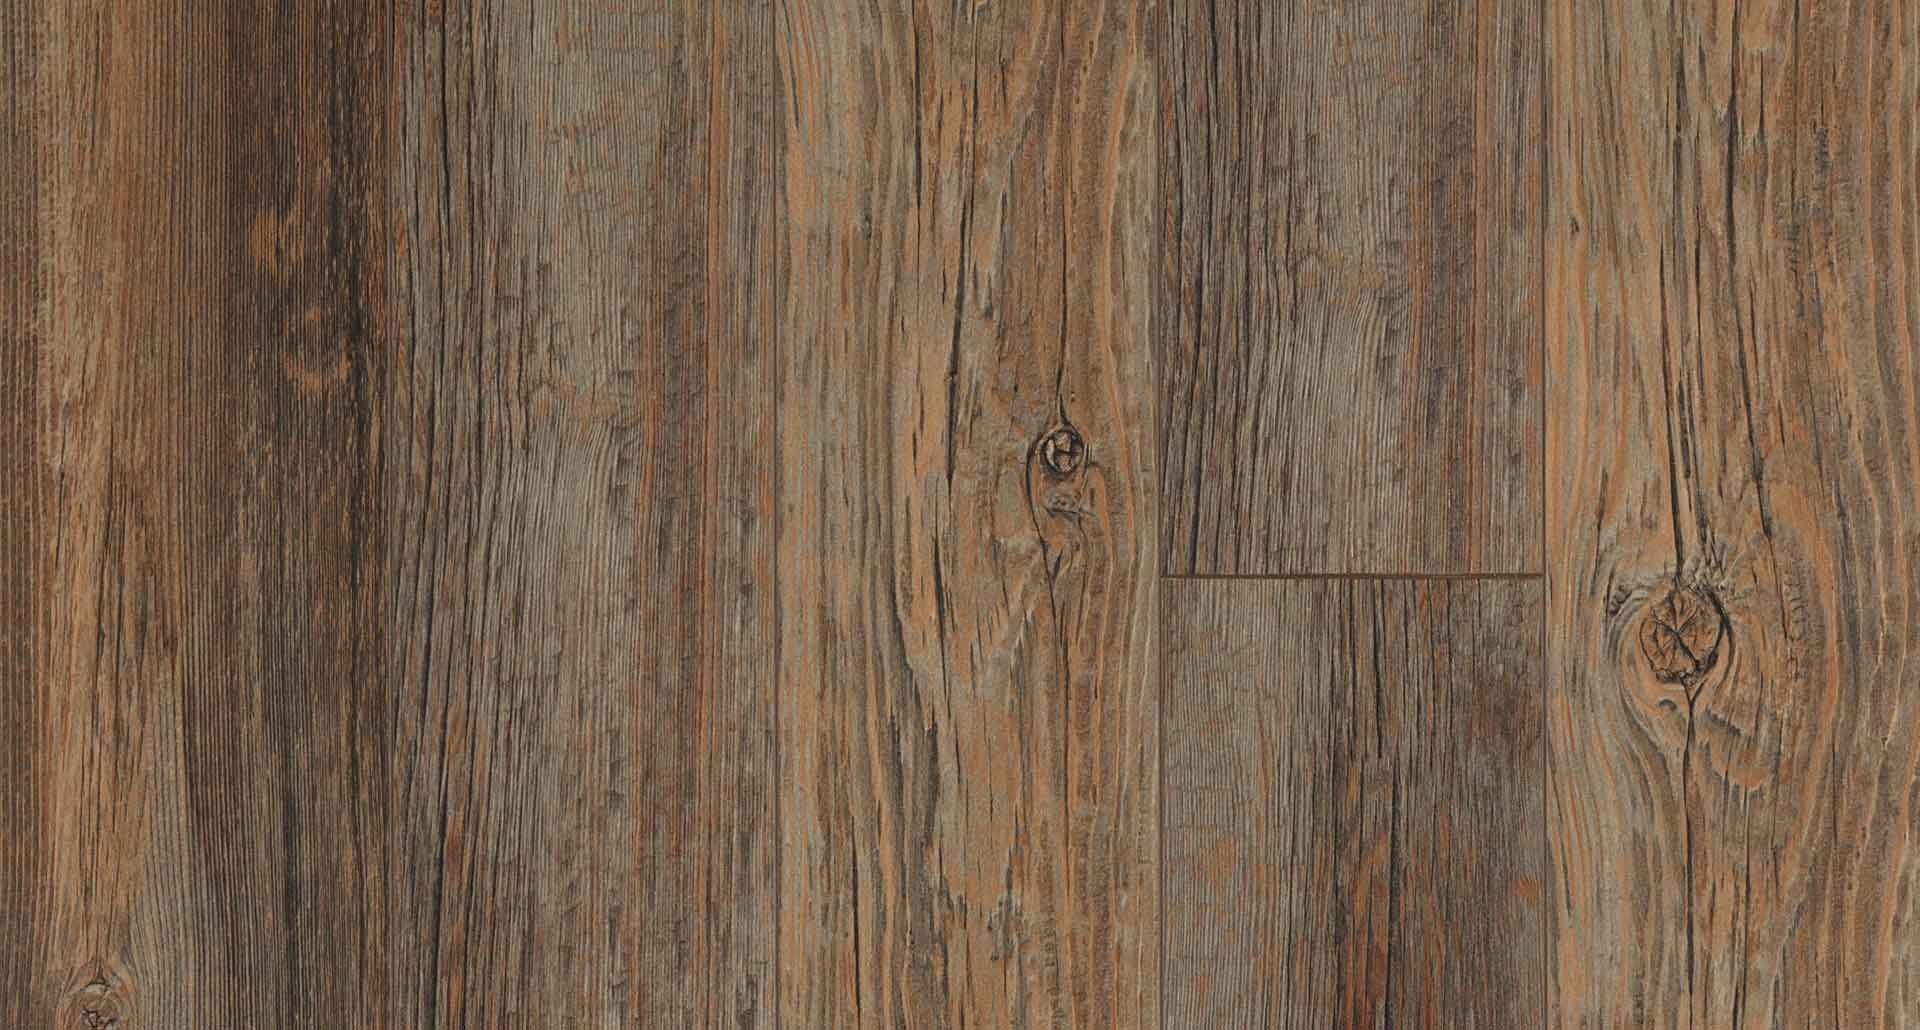 Weatherdale Pine Textured Laminate Floor Dark Pine Wood Finish 10mm 1 Strip Plank Laminate Flooring Easy To Laminate Flooring Oak Laminate Flooring Flooring